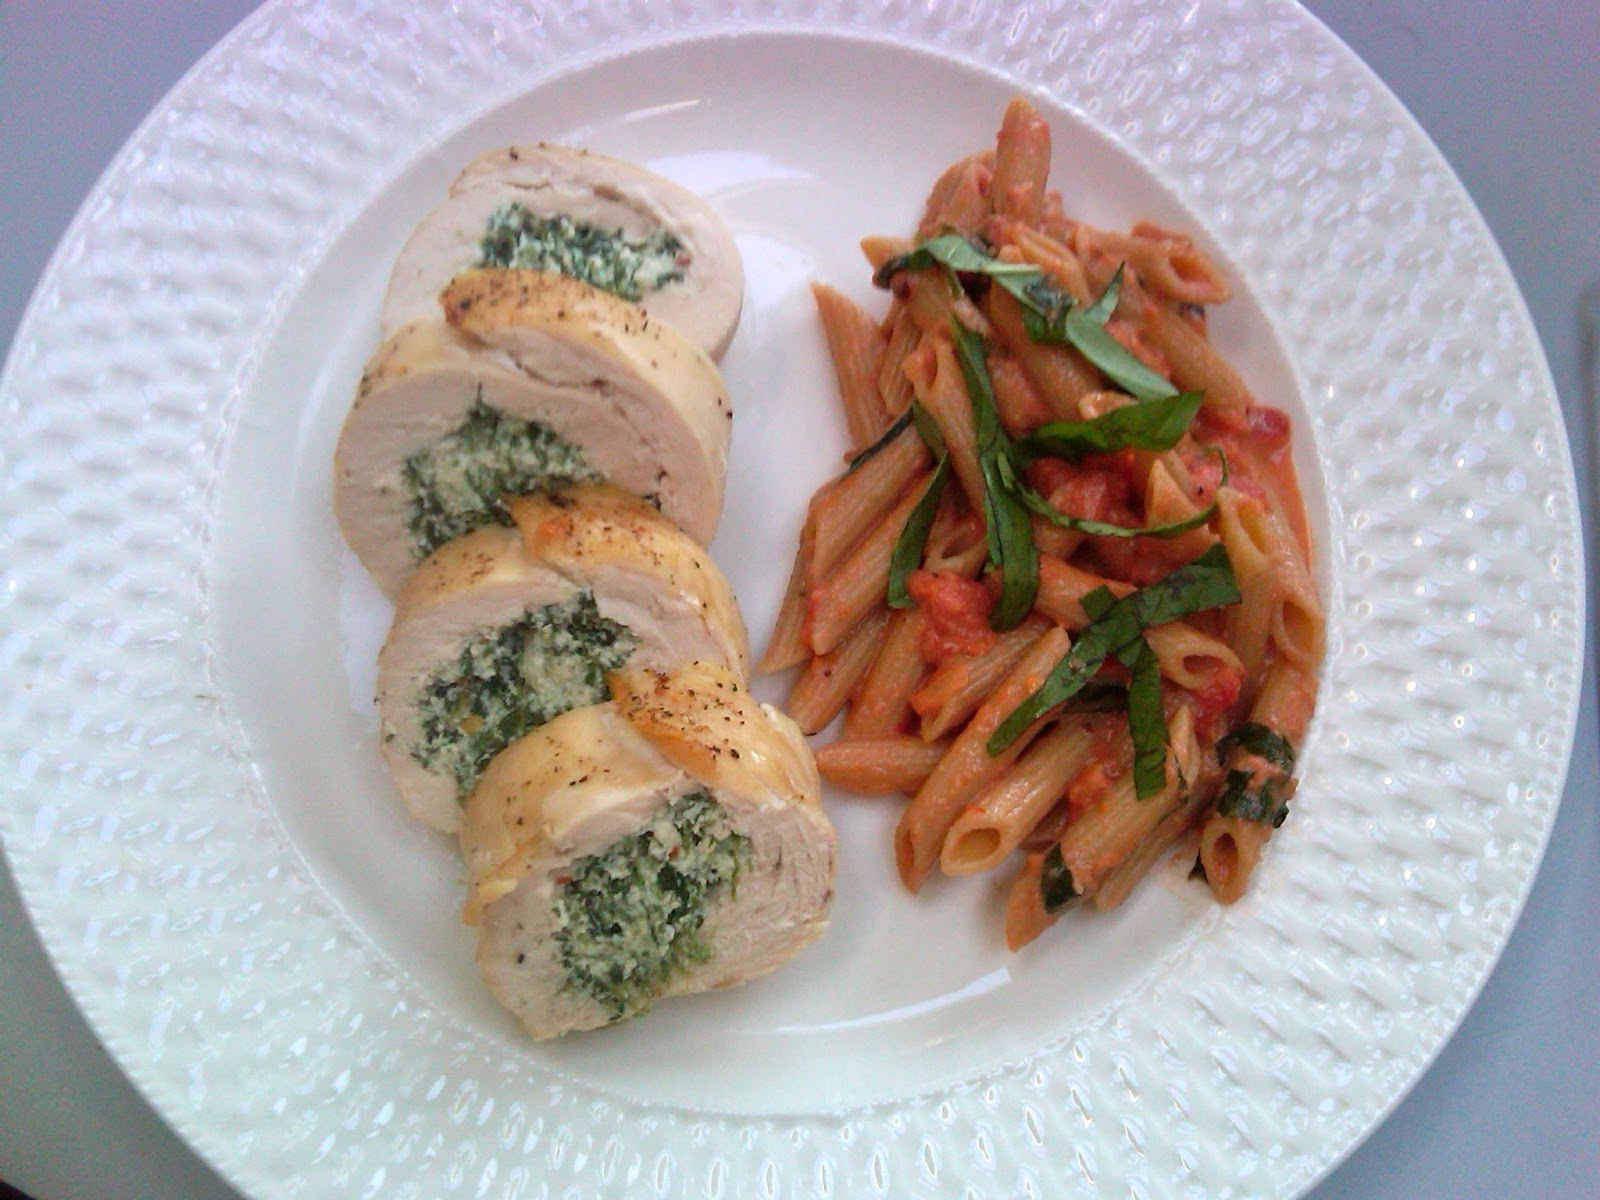 Sommer S Skinny Recipes Stuffed Chicken Breast With Whole Grain Penne Alla Vodka